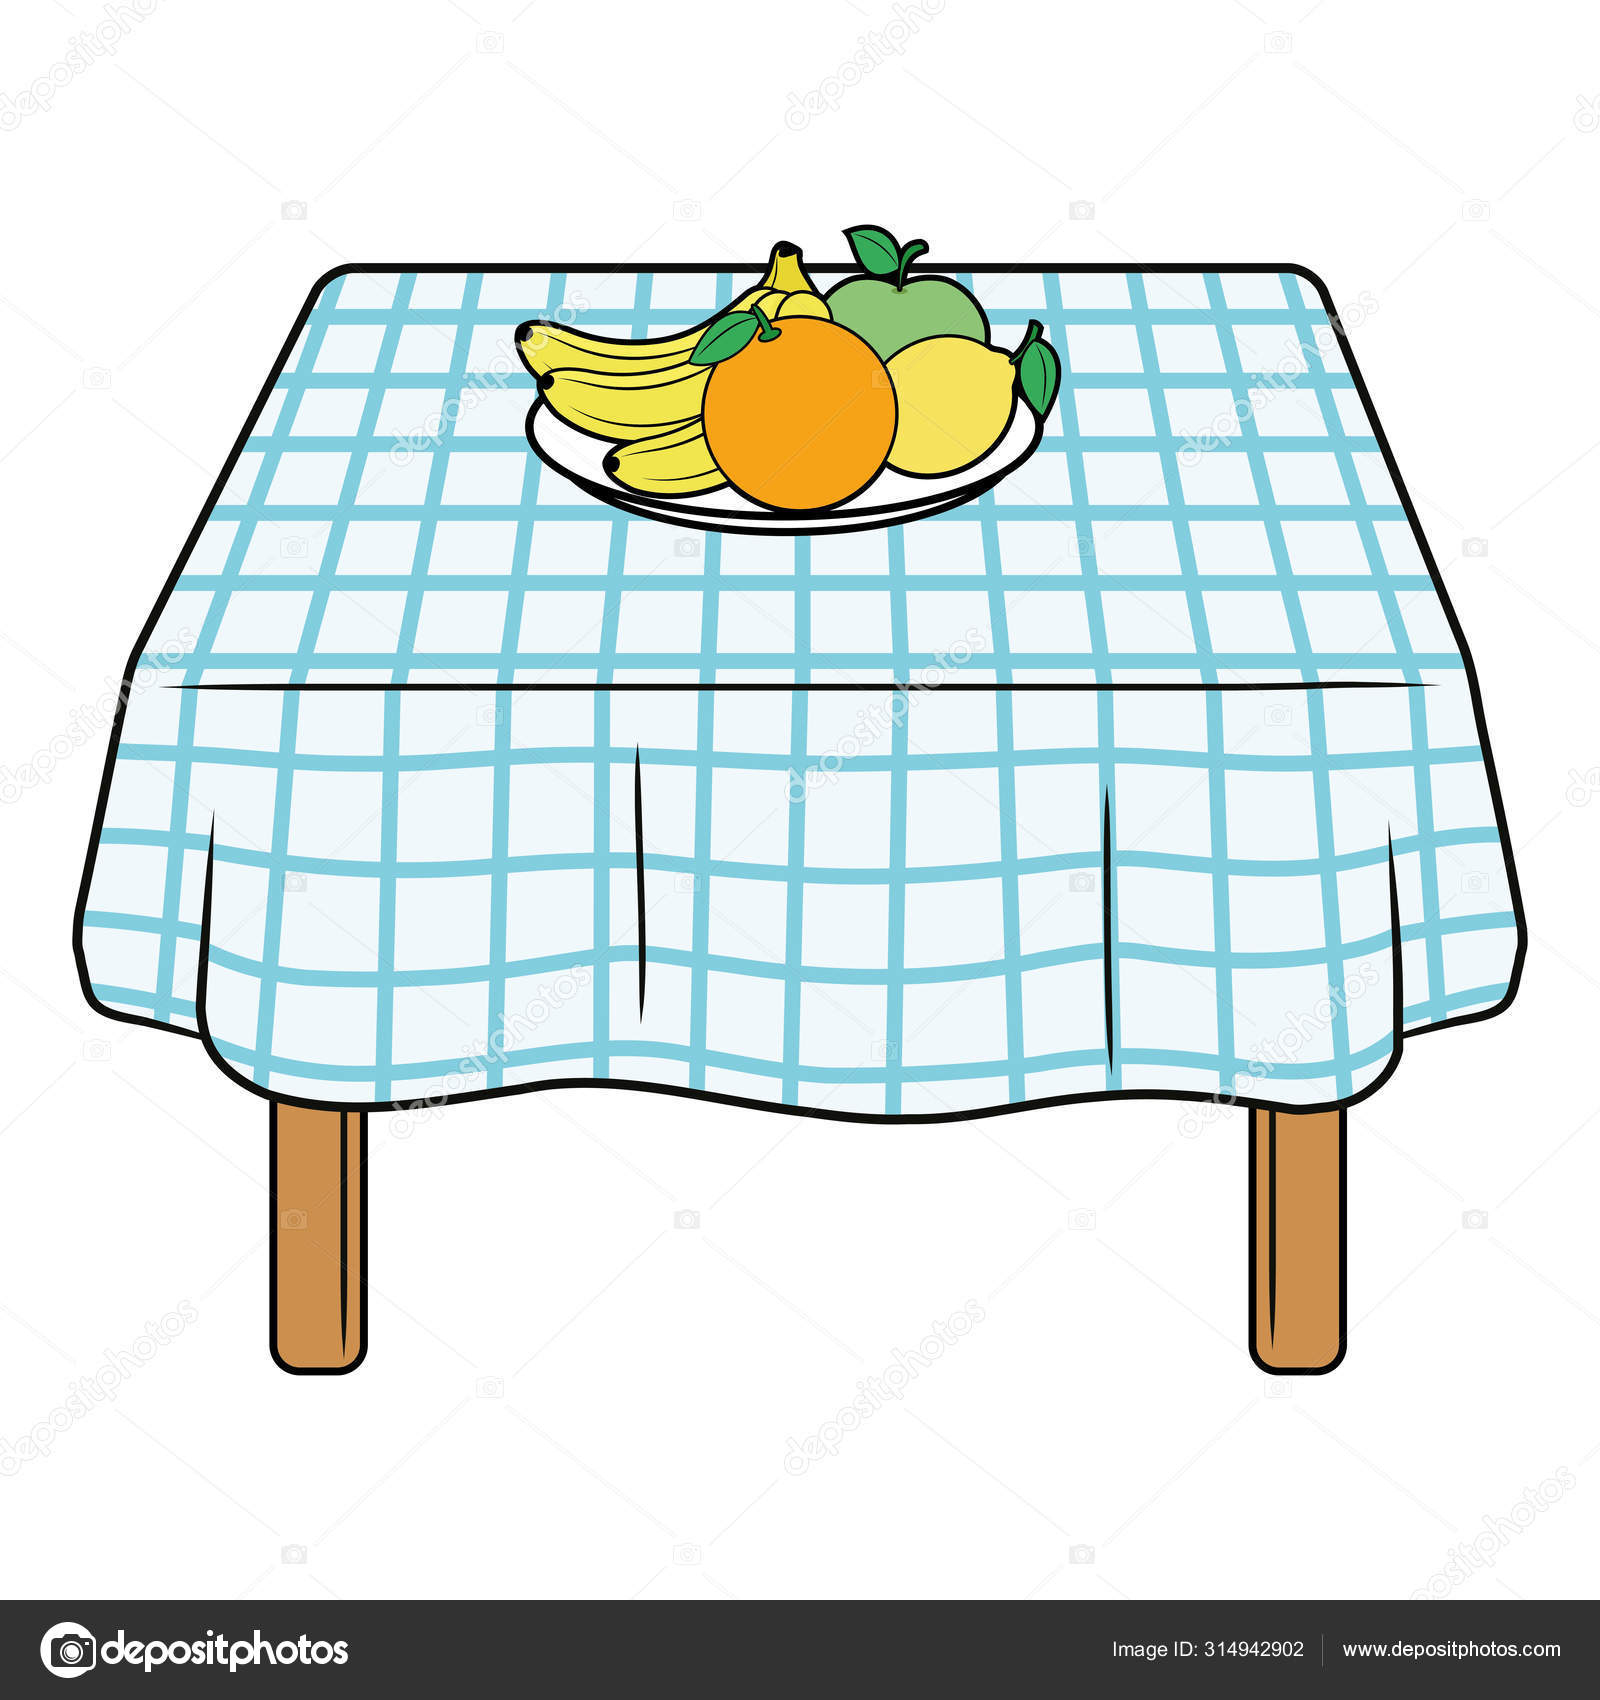 Illustration of a kitchen table 9